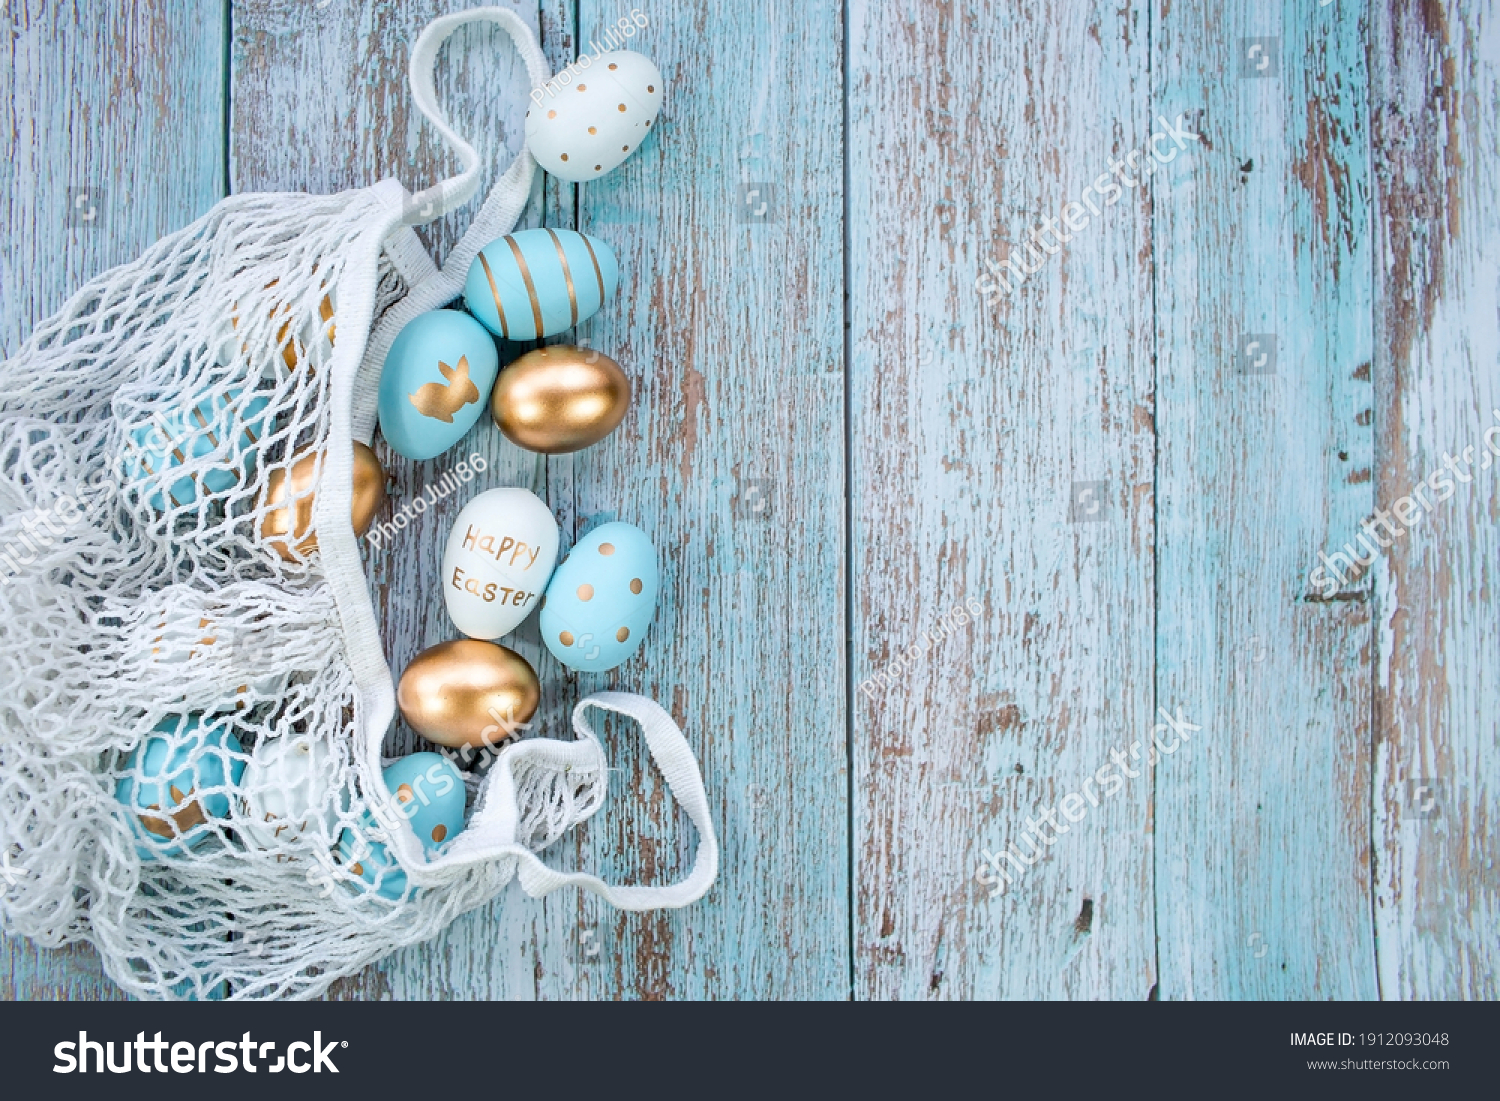 Gold, black, white, blue  eggs in a string bag on a blue wooden background. Geometry. The minimal concept. Top view. An Easter card with a copy of the place for the text. #1912093048